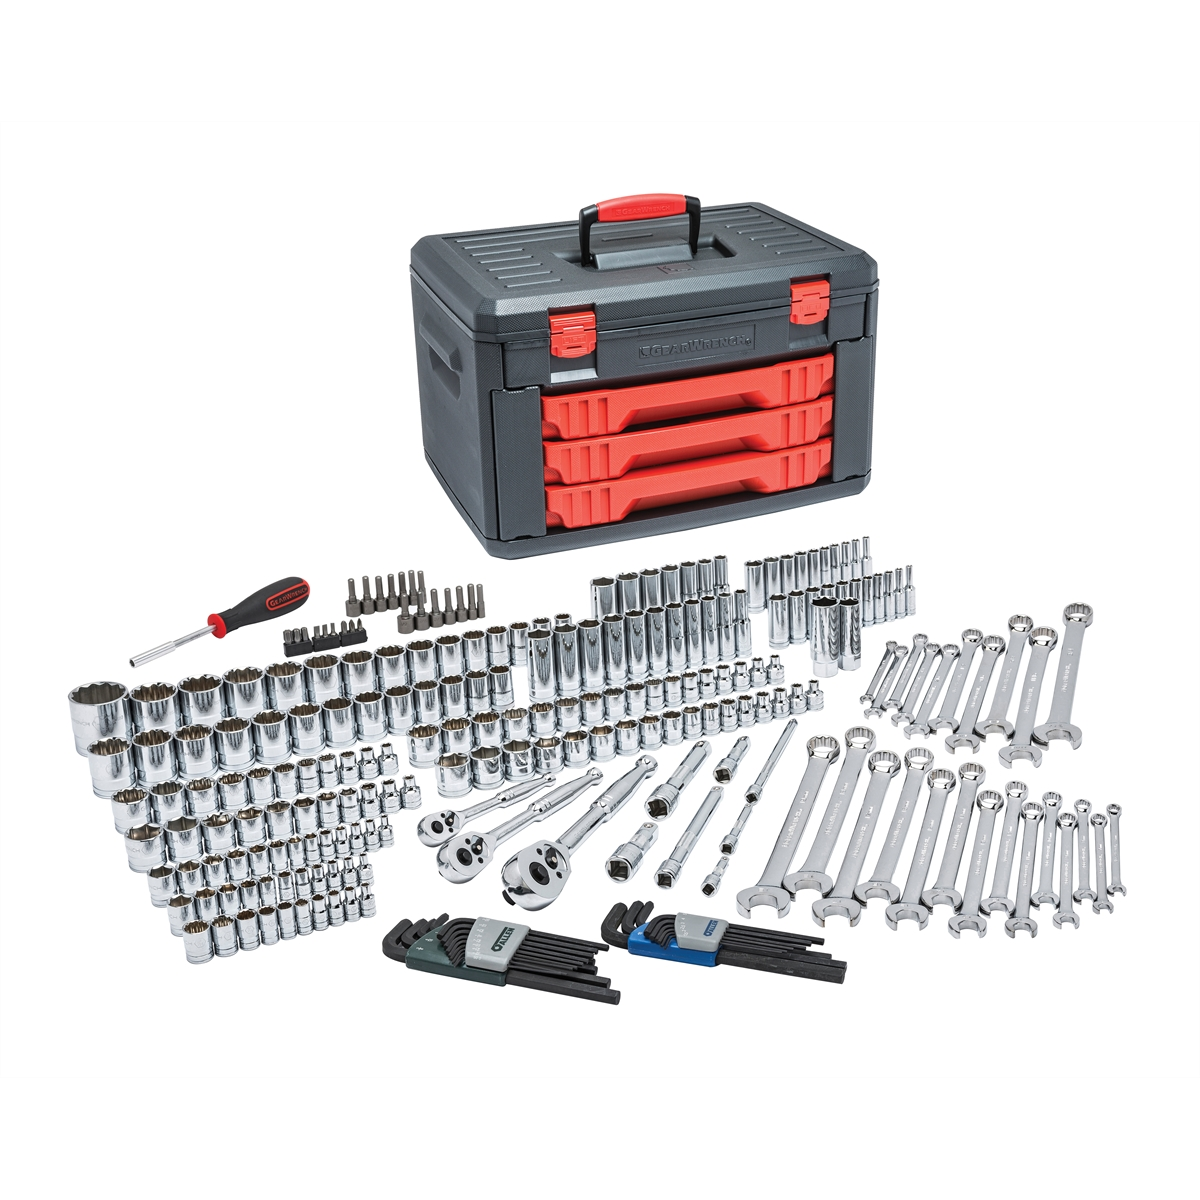 239 Pc. SAE Metric Mechanic's Tool Set with 3 Drawer Case